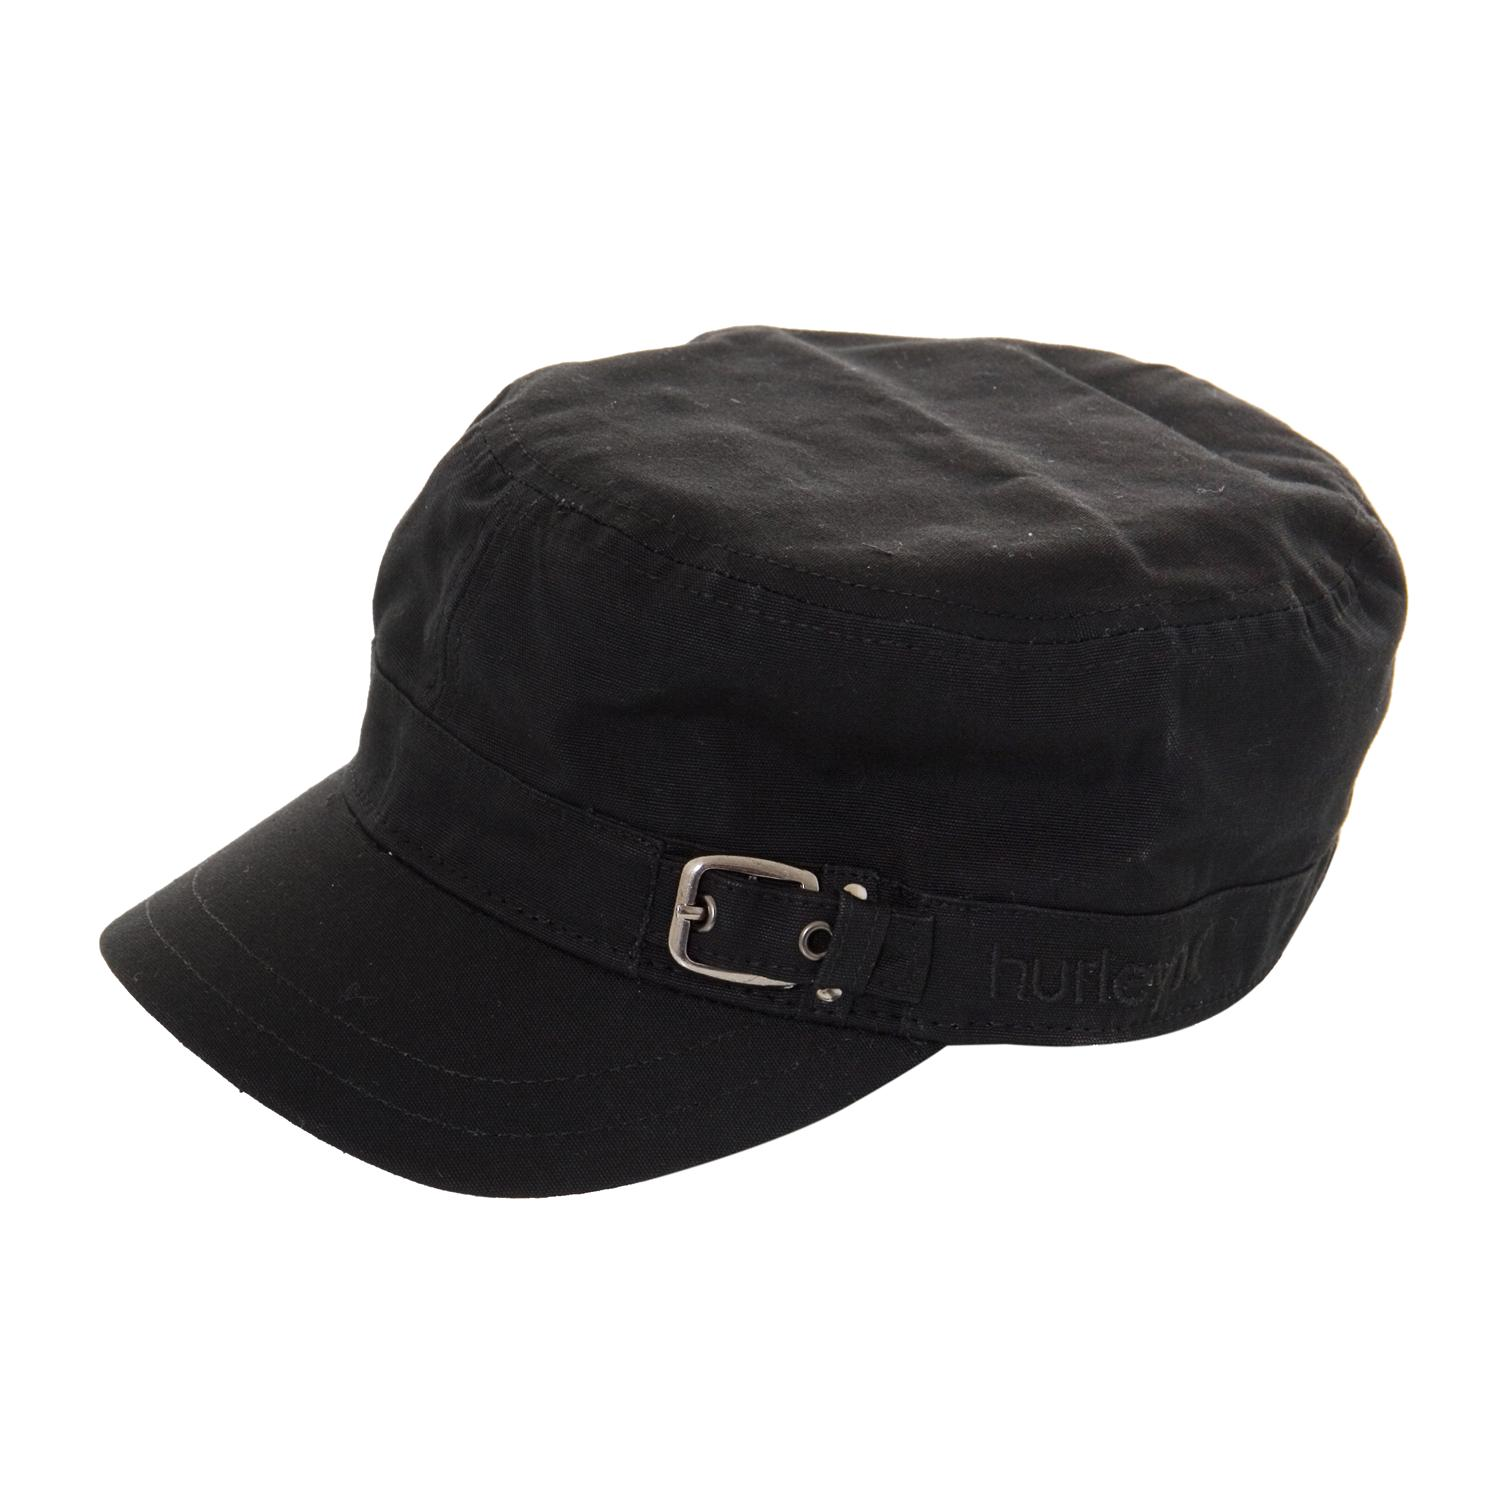 hurley o o yc hat s evo outlet